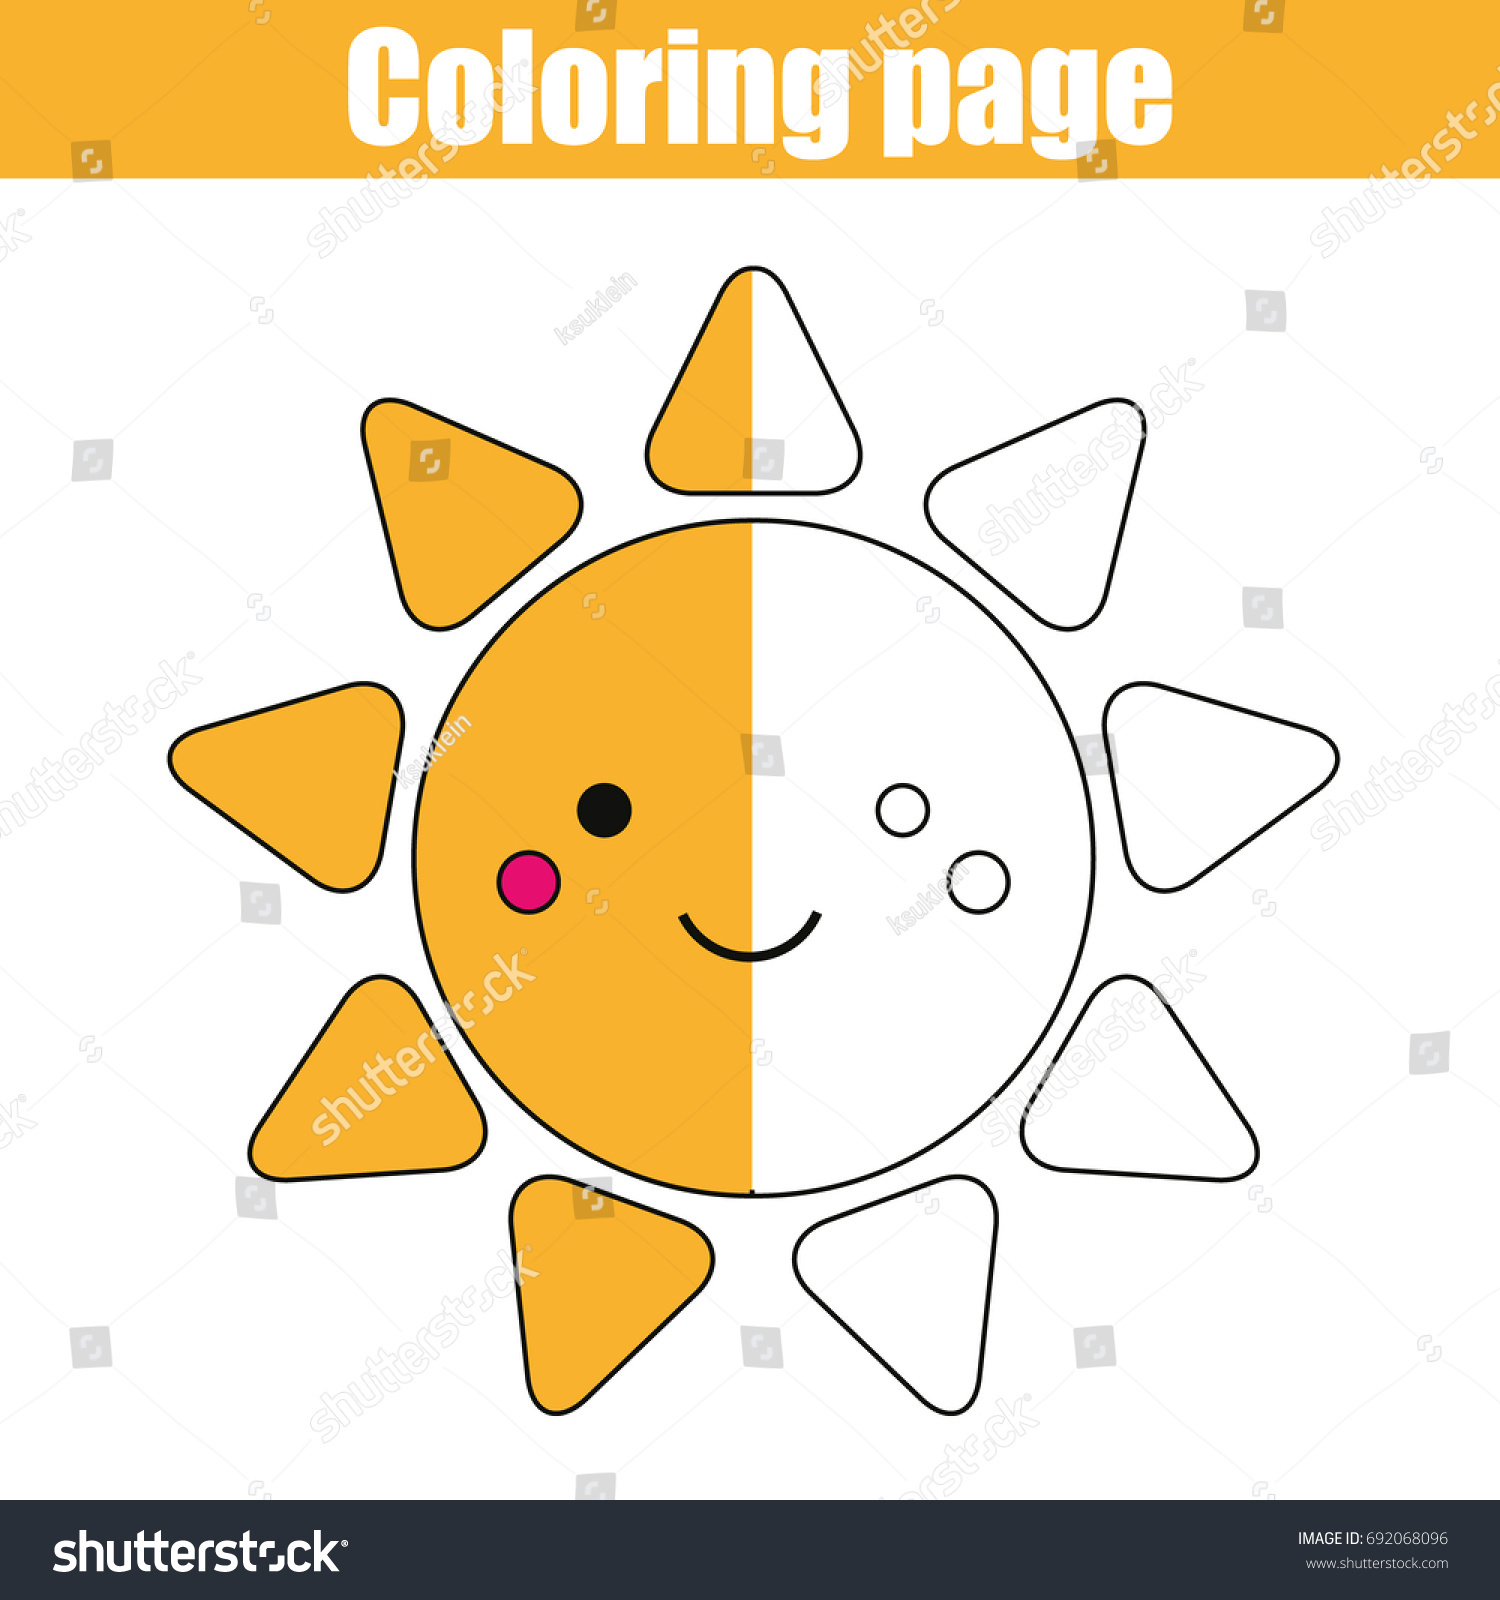 coloring page cute smiling sun character stock vector 692068096